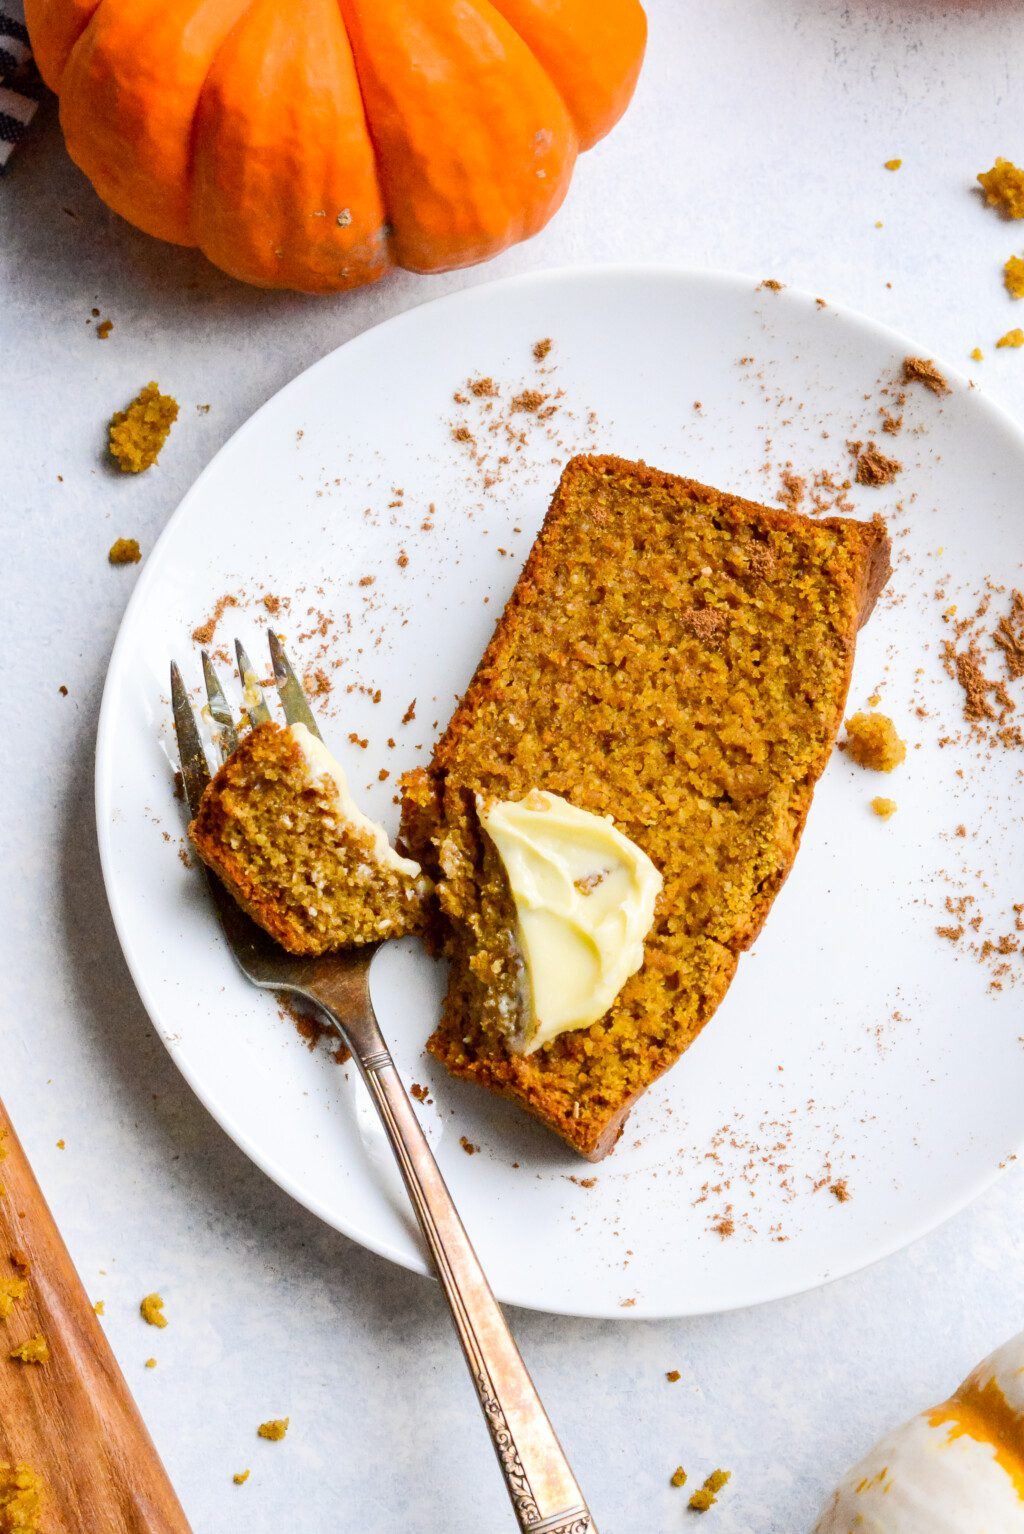 top down view of a slice of gluten free pumpkin bread with butter and cinnamon